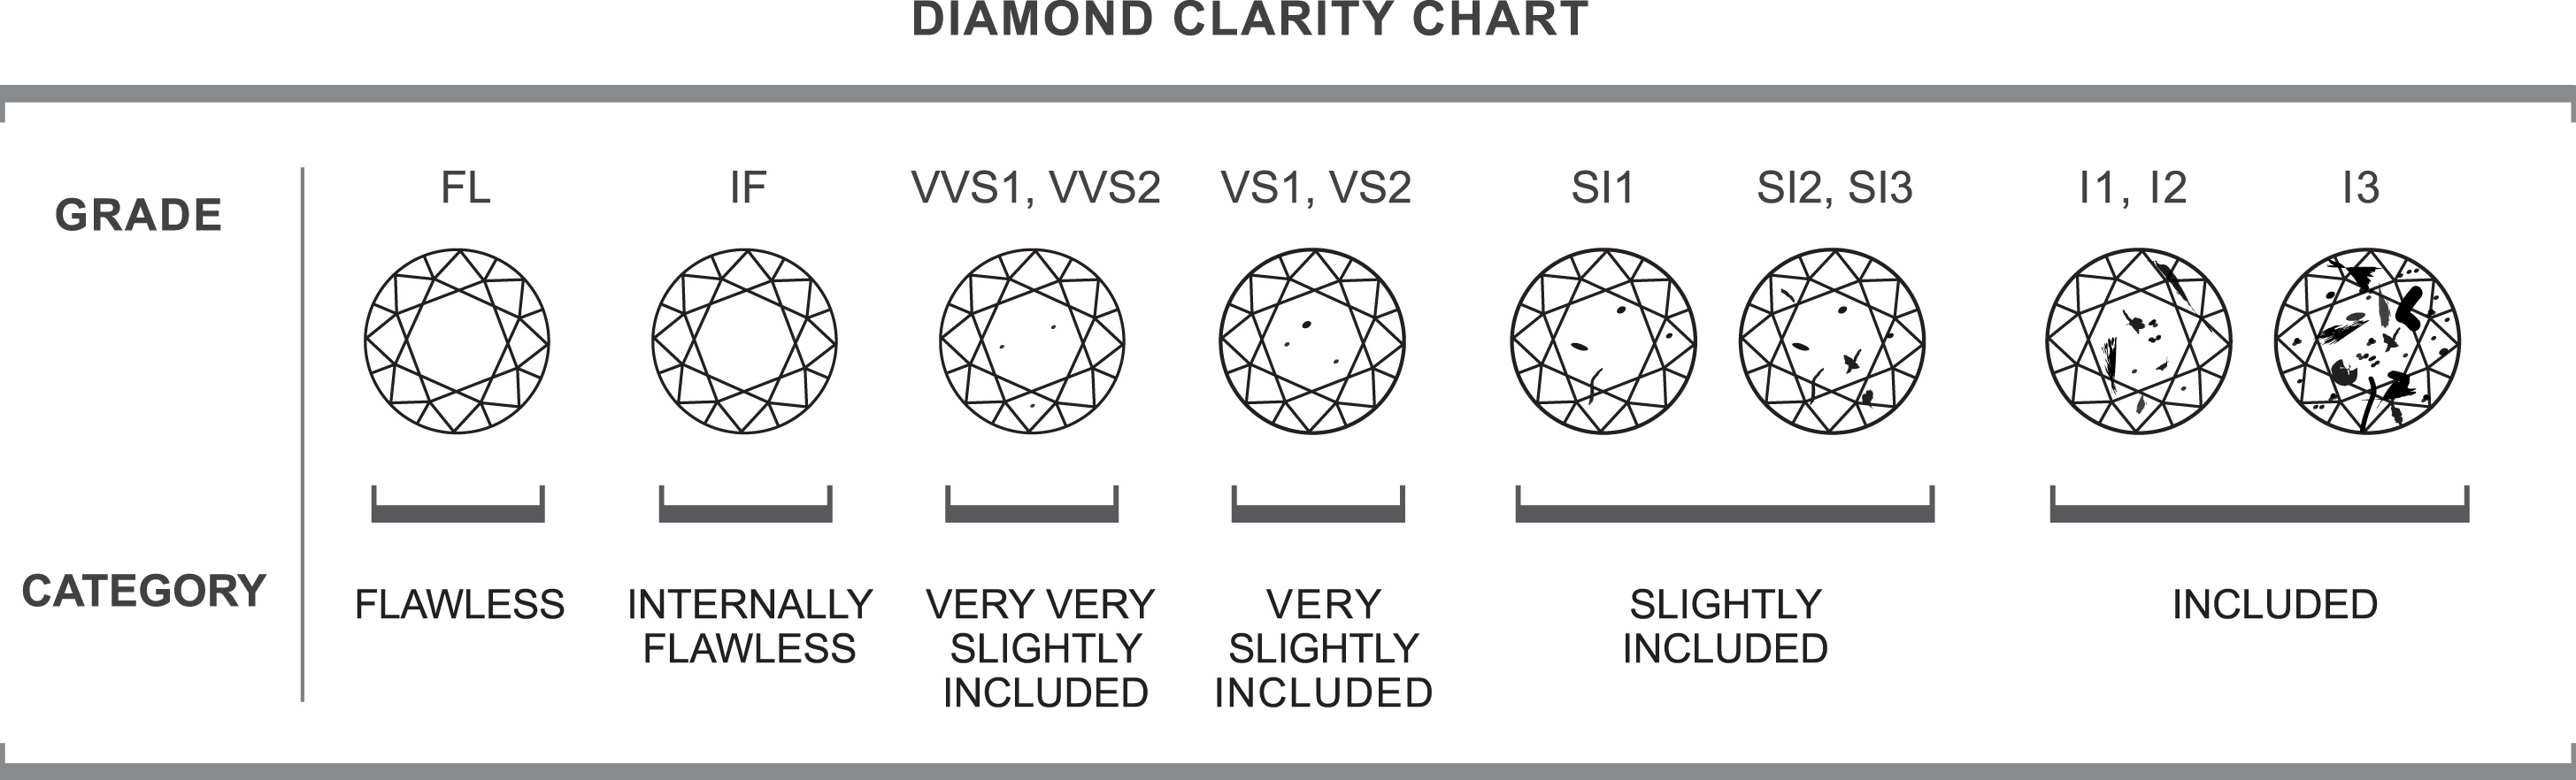 report of en sample grading us gia cdgr colored diamond